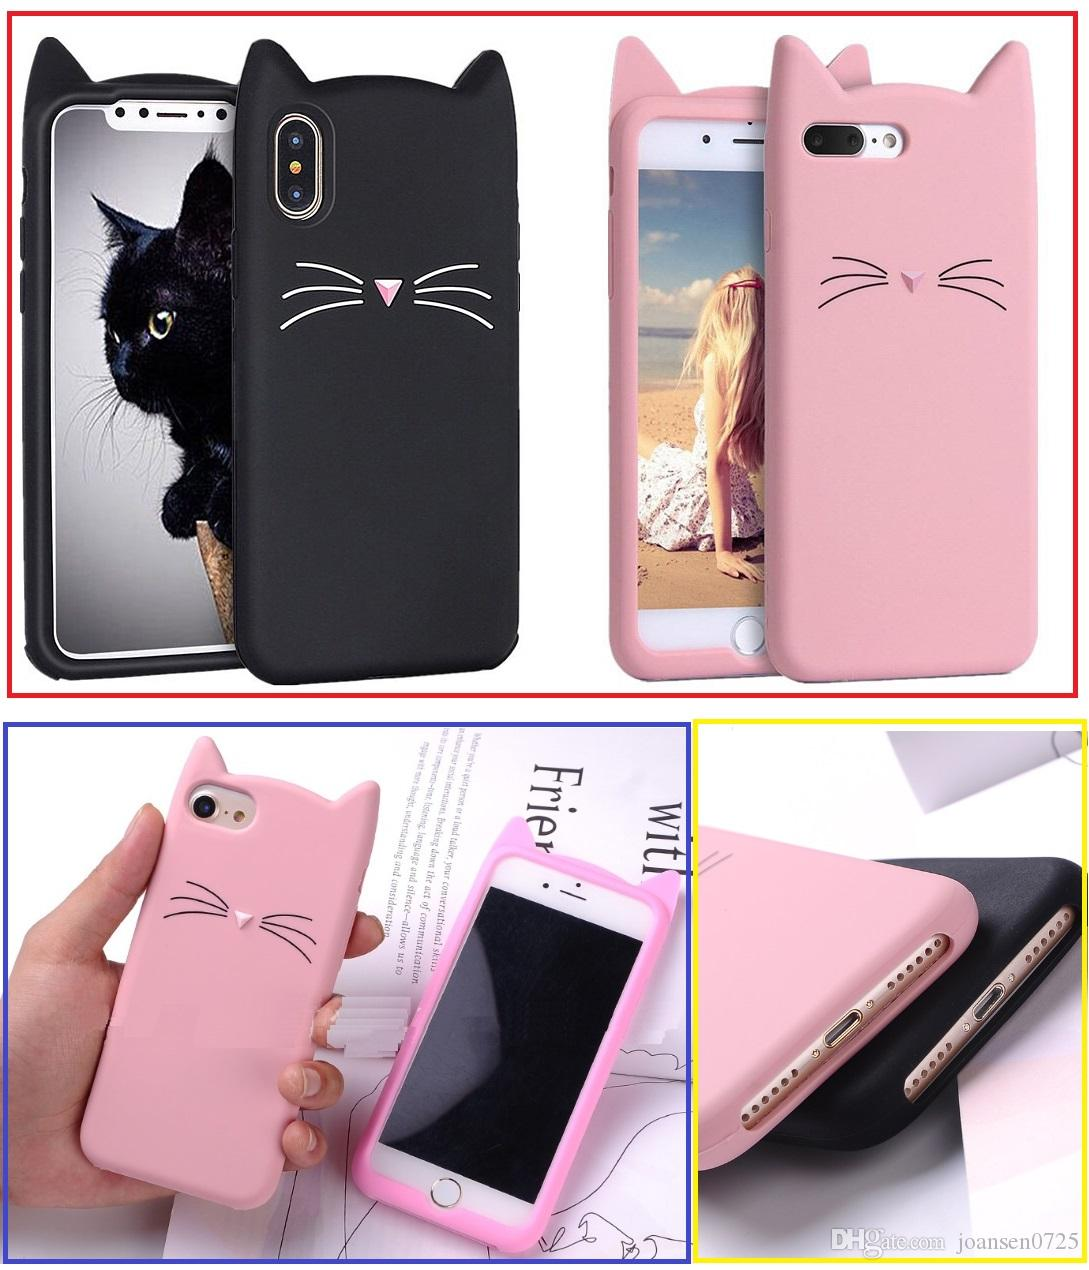 472a060f8da For Iphone 5 6 Phone Cases Shell 3D Bearded Cat Silicone Soft Cover For  IPhone 7 I7 Bag Funda Cell Phones Covers Design Cell Phone Case From  Joansen0725, ...